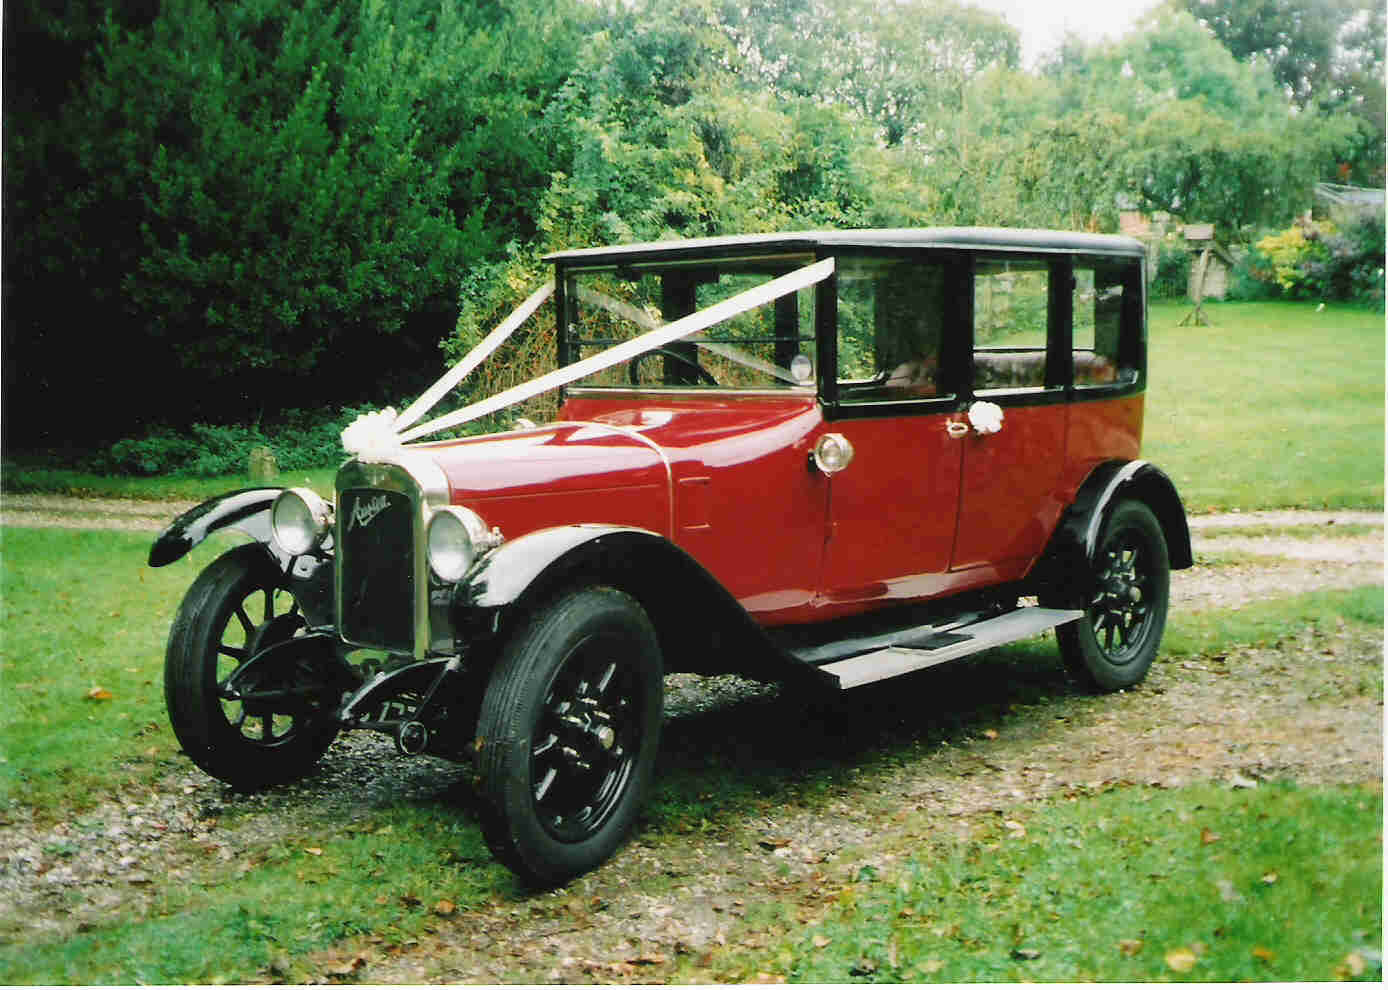 Pictures Of Old Classic Cars - Pictures Of Cars 2016